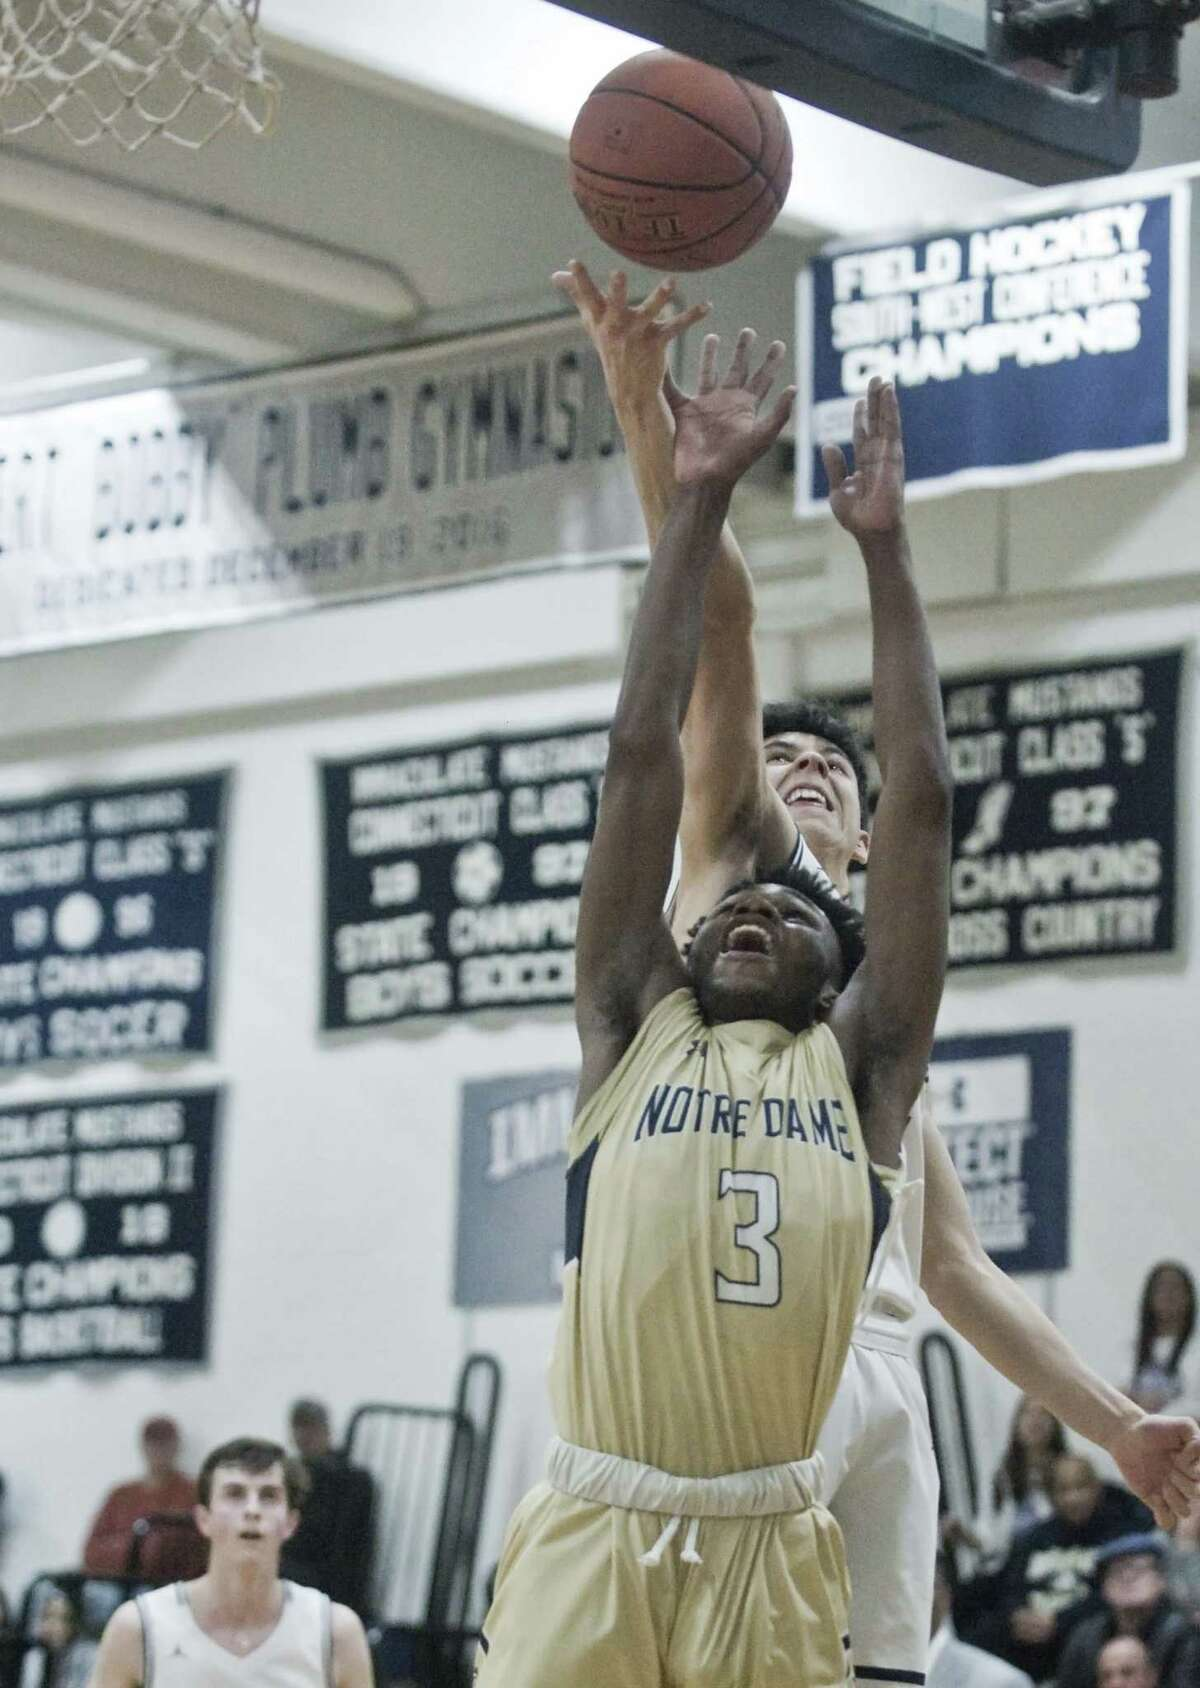 Notre Dame-Fairfield High School's Jonathan Despeignes reaches for the rebound in the SWC boys basketball tournament semifinal against Immaculate High School, played at Immaculate. Monday, Feb. 25, 2019